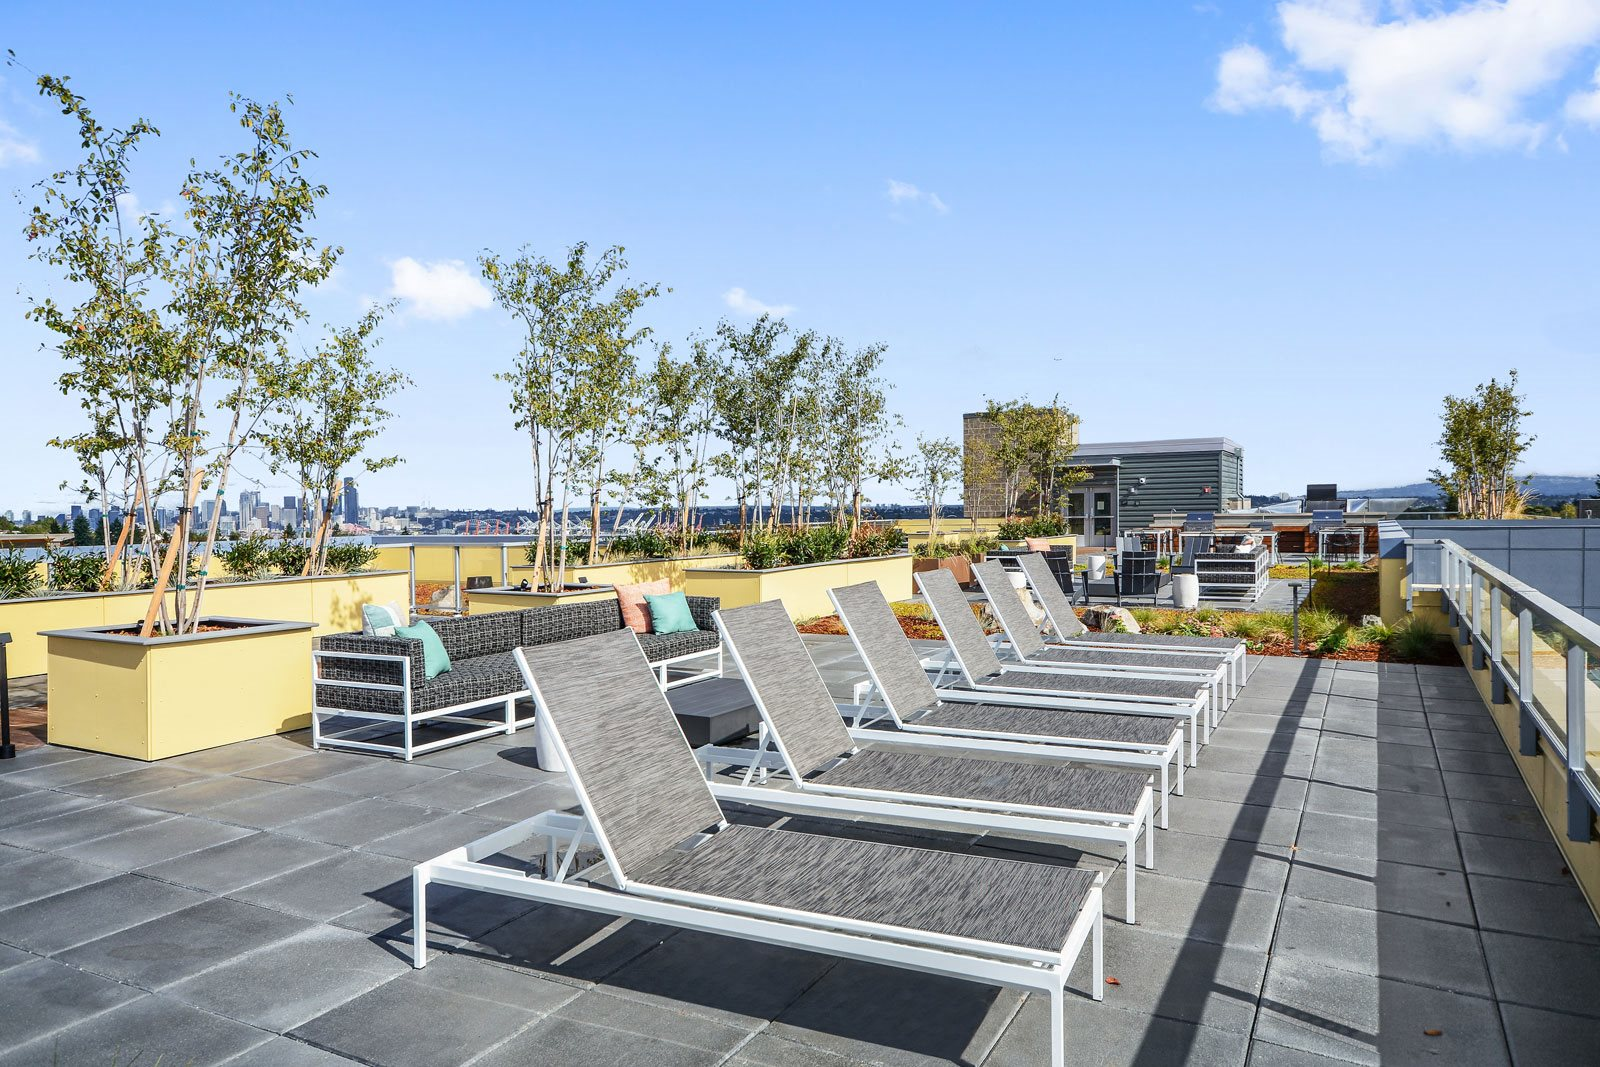 Rooftop Sundeck with Lounge Chairs at The Whittaker, 4755 Fauntleroy Way, Seattle